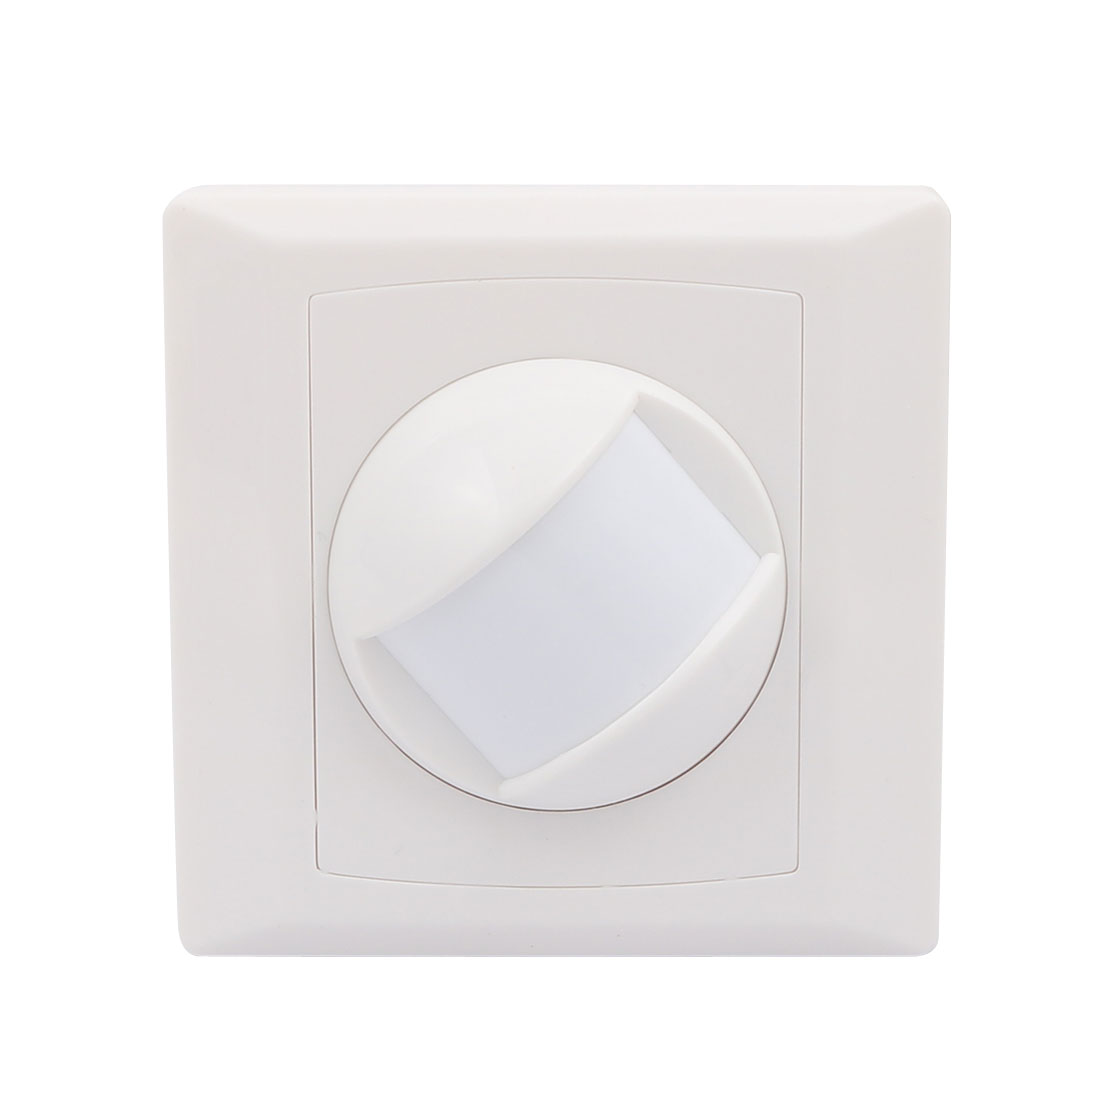 DC 9V-15V Energy Saving Infrared IR Detector Switch Snap in Curtain Sensor